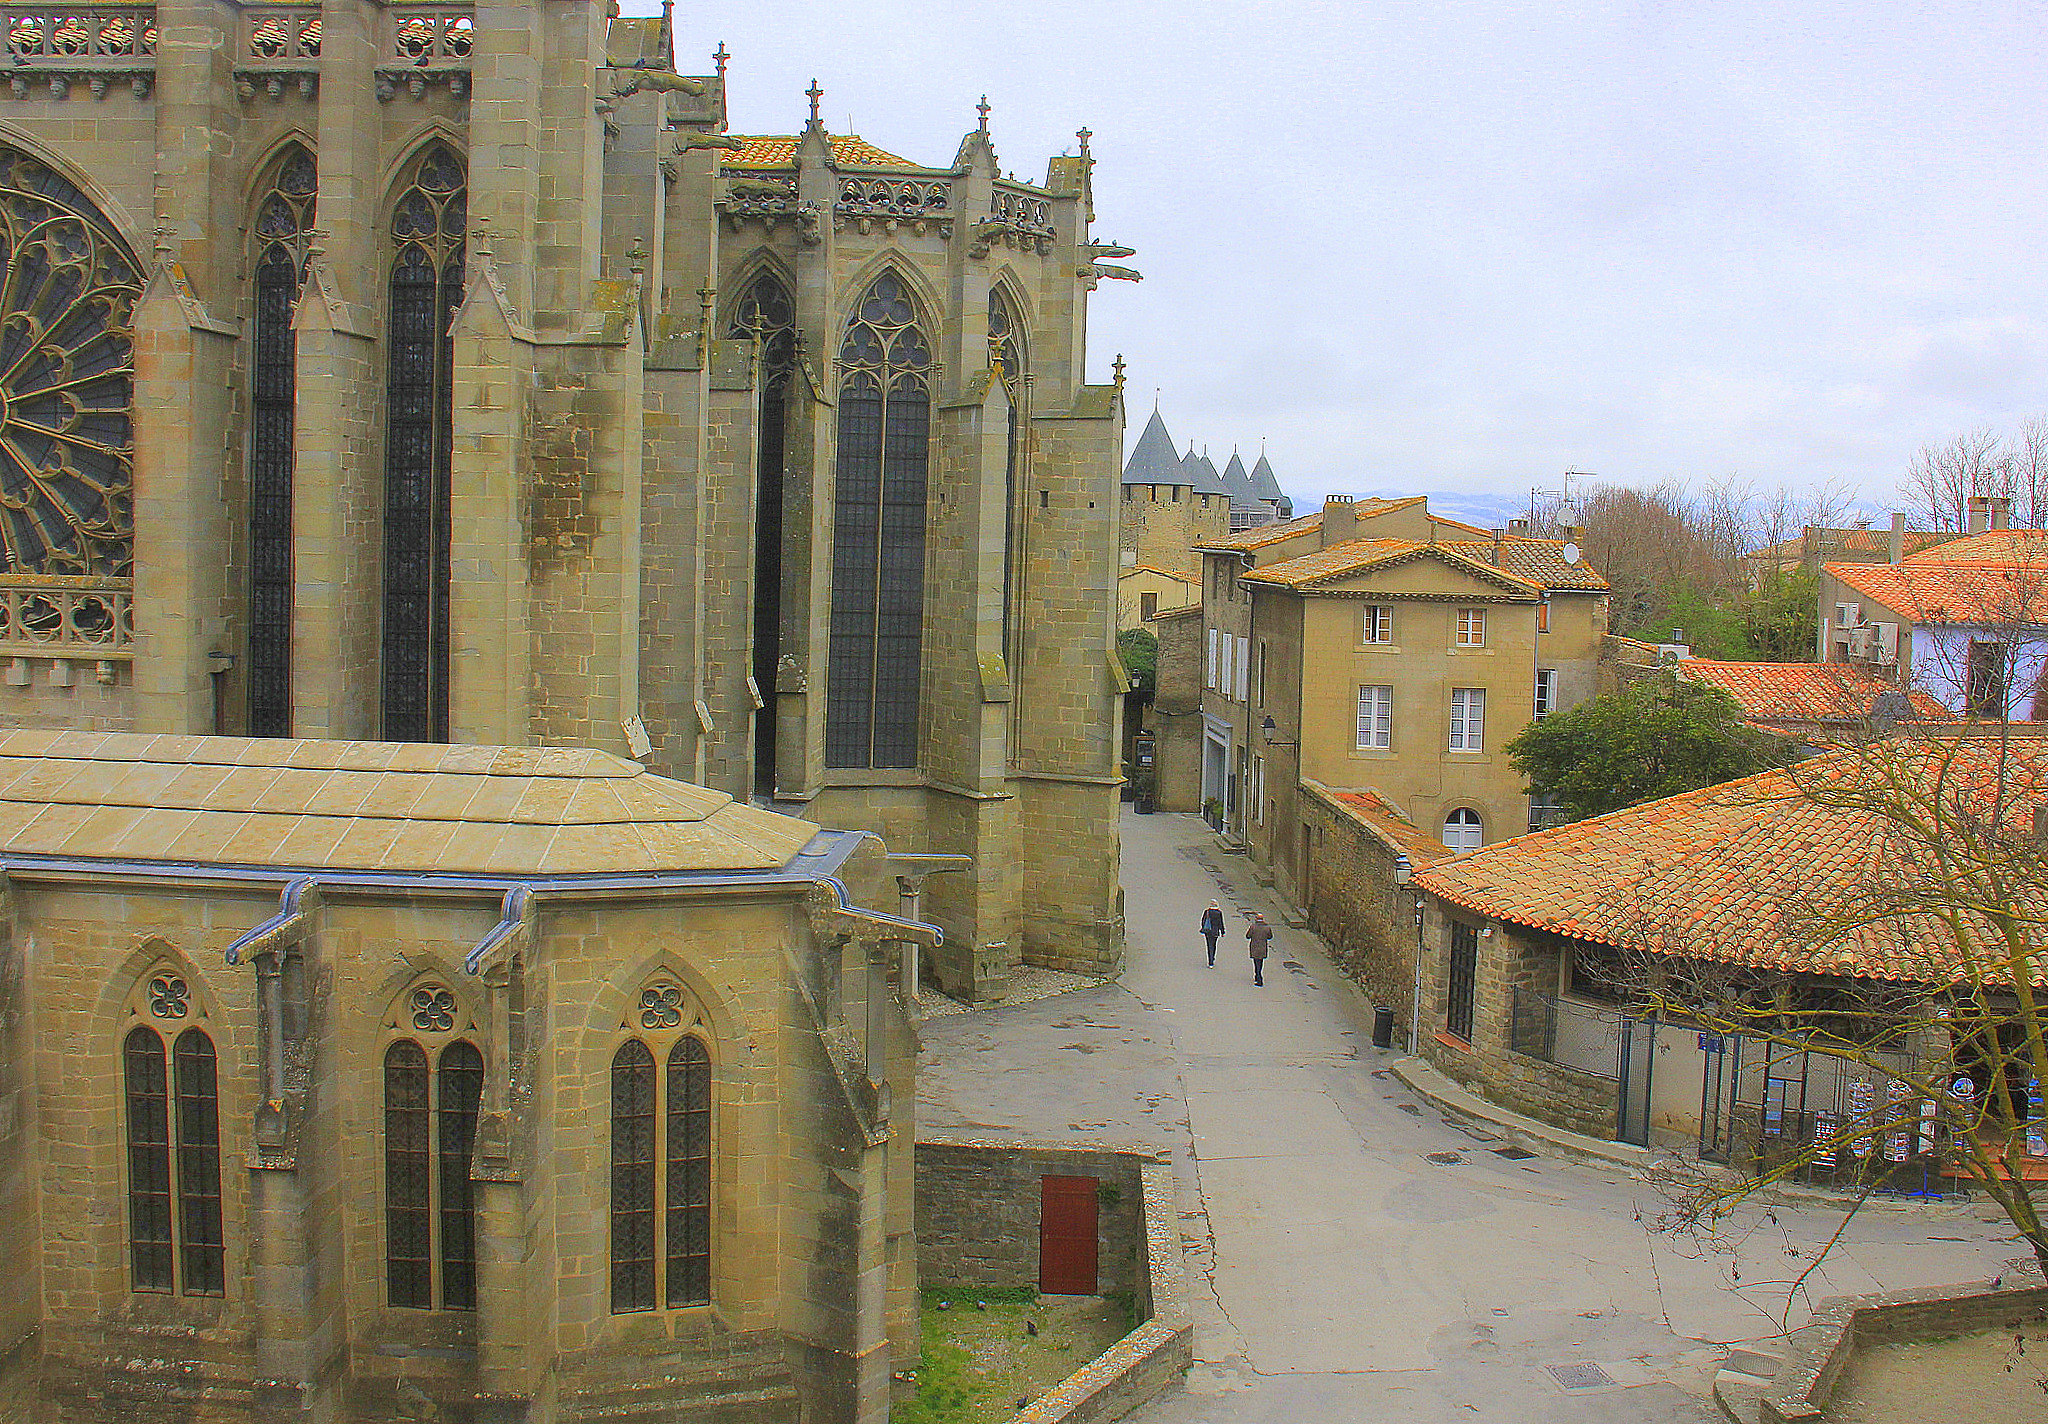 Carcassonne is a beautiful heritage site